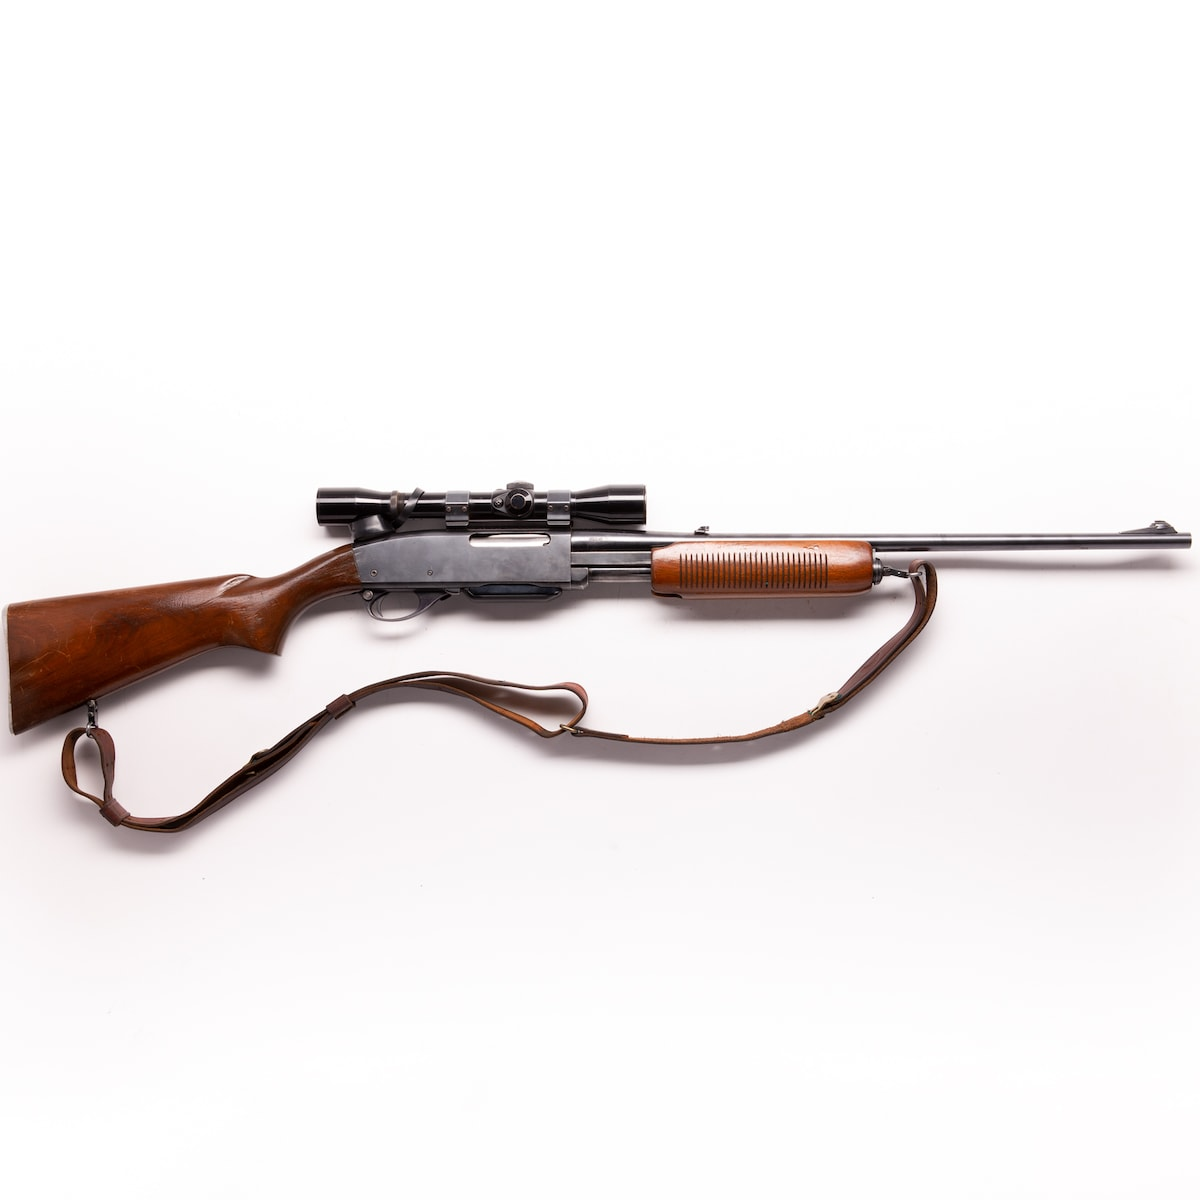 Remington 760 Gamemaster - For Sale, Used - Very-good